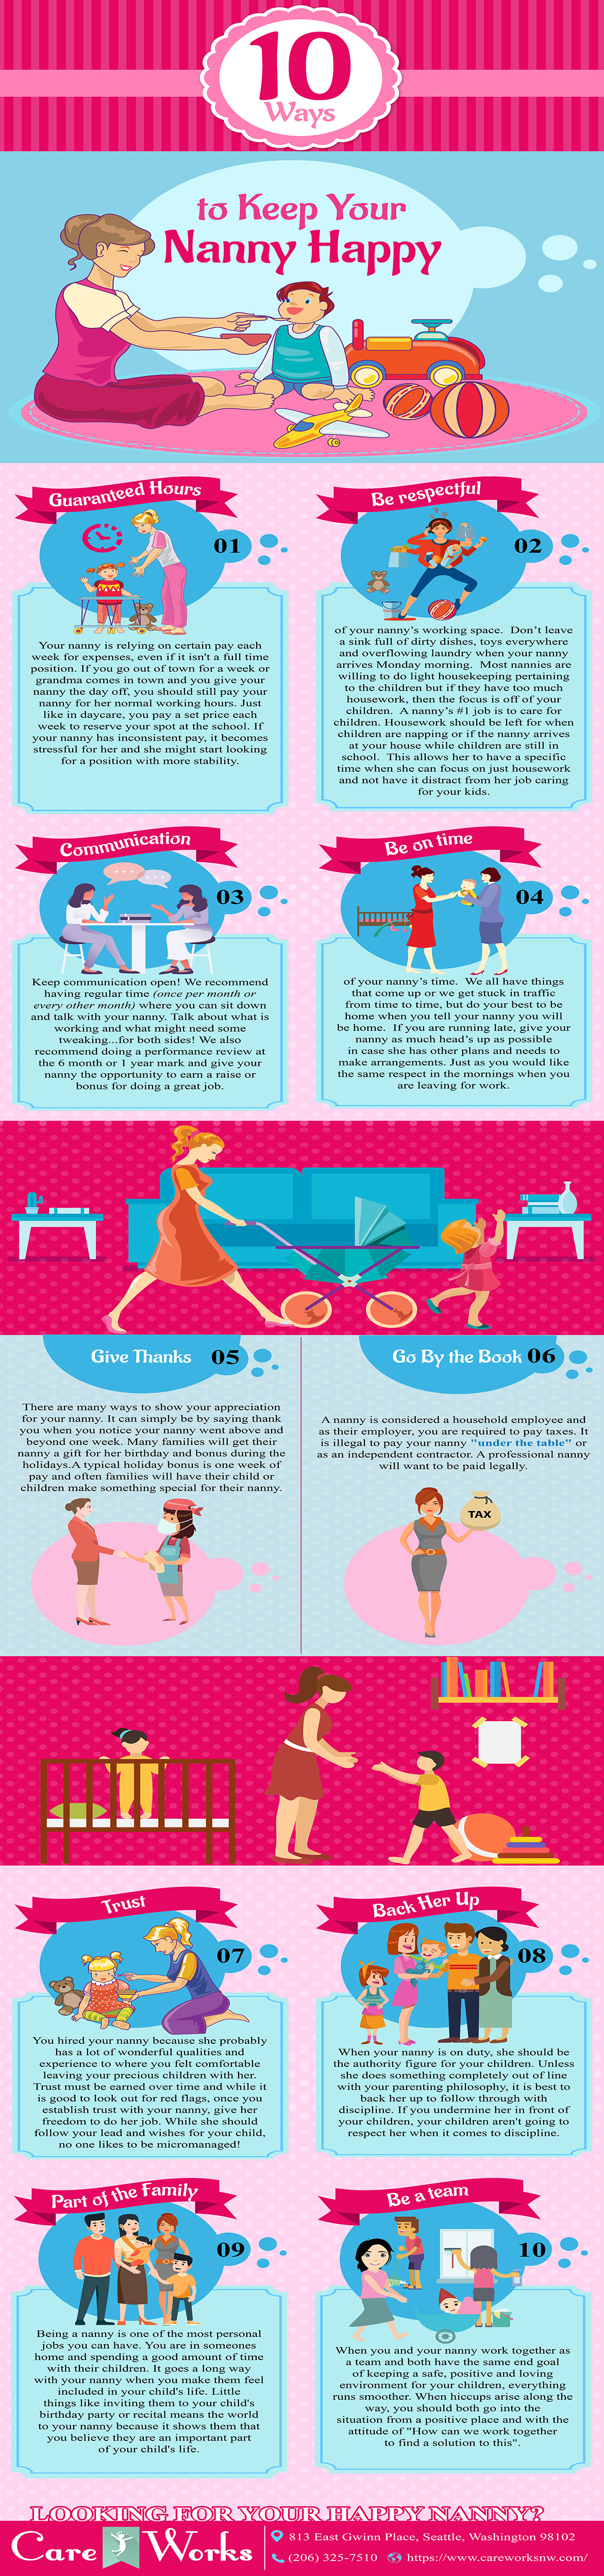 How To Keep The Nanny Happy [Infographic]